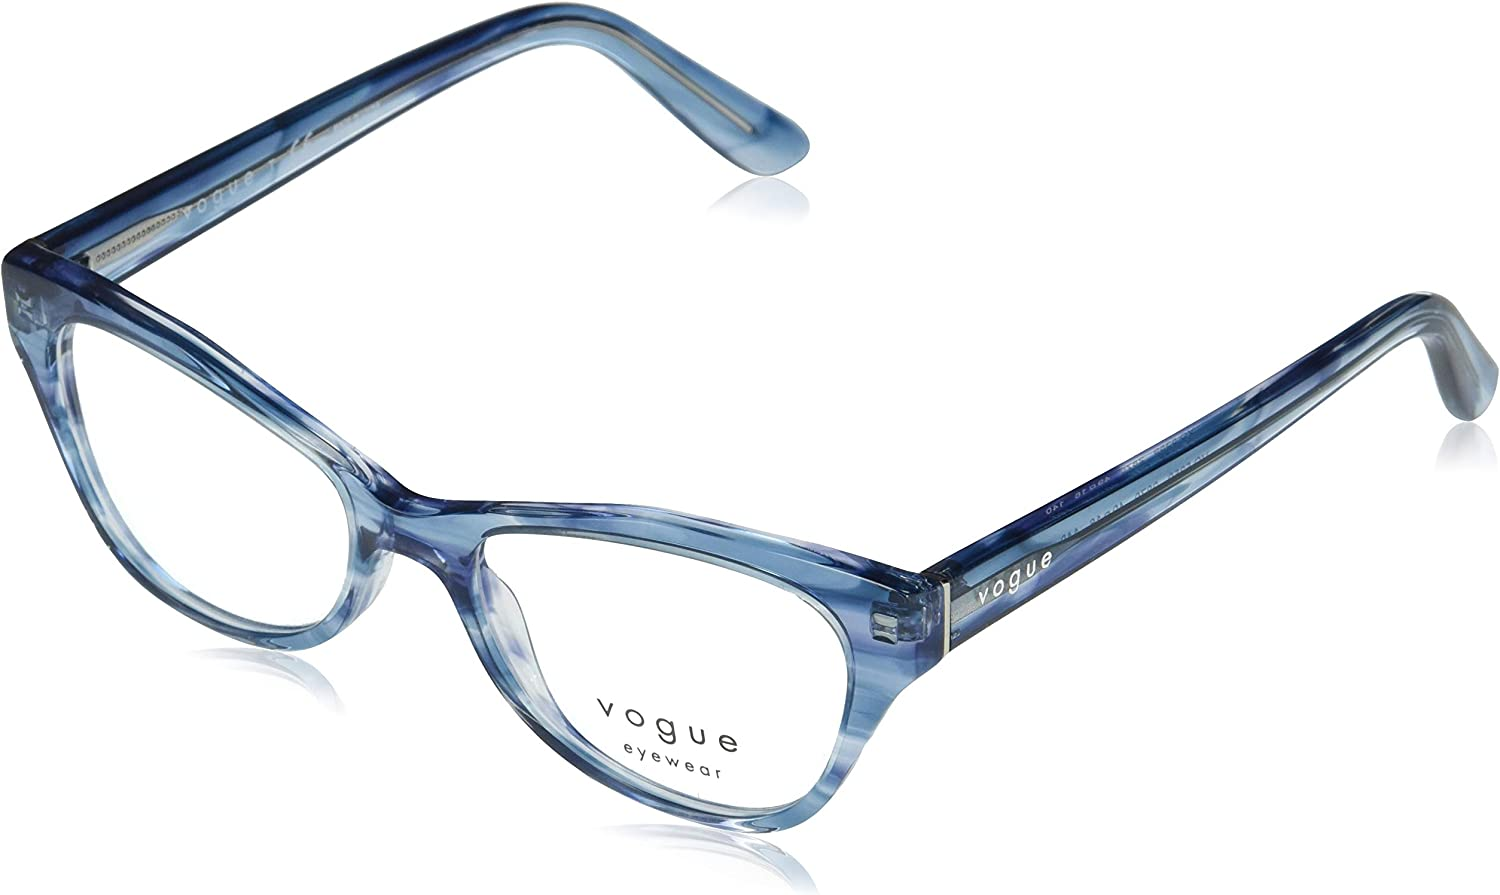 Vogue Eyewear Women's Vo5359 Free shipping on posting reviews Prescription Fram Butterfly Direct sale of manufacturer